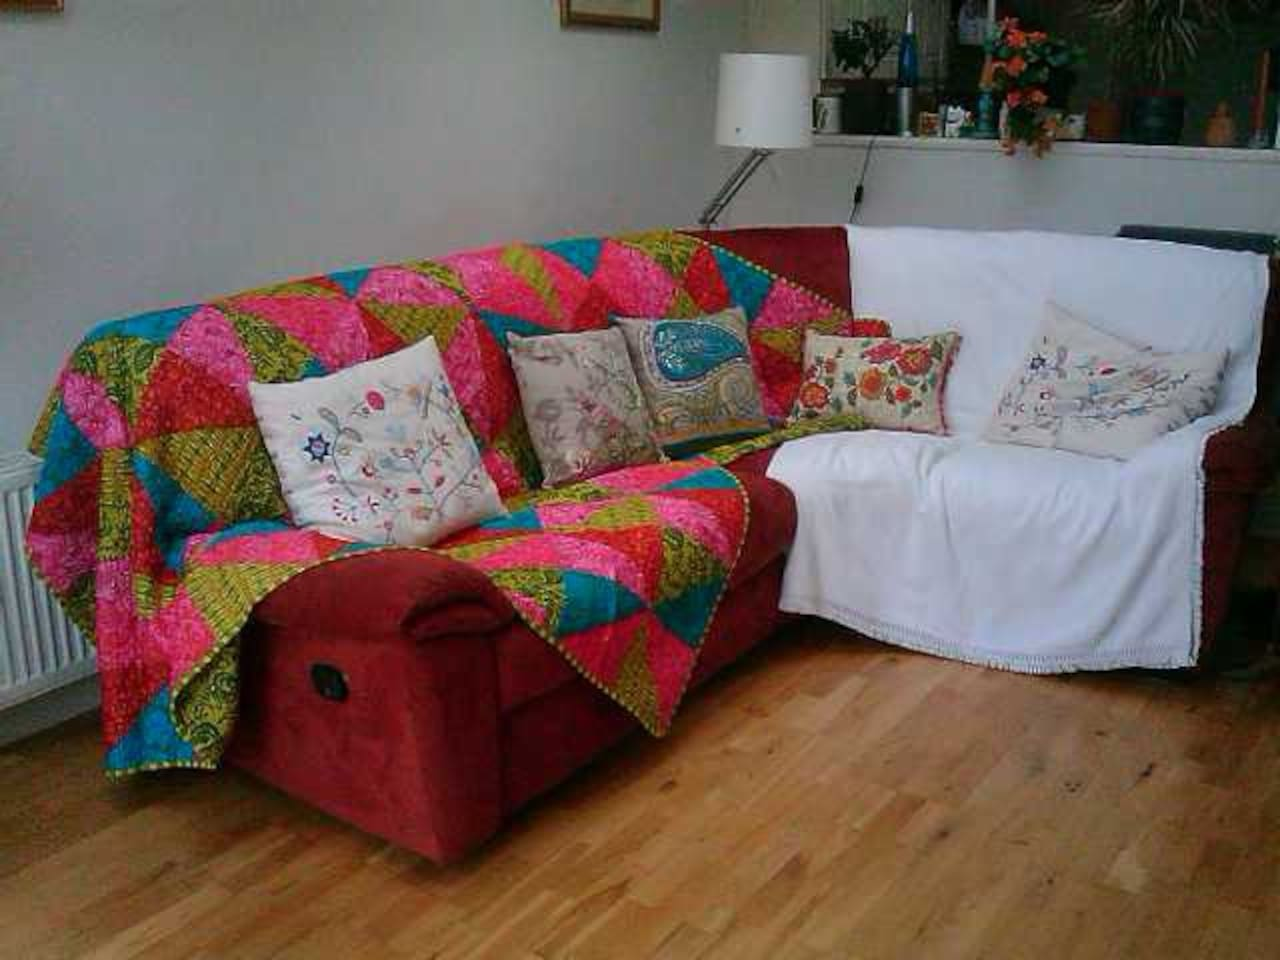 Living room with very comfortable sofa, not old and tatty, excellent condition, covered lovingly to protect it from any spills